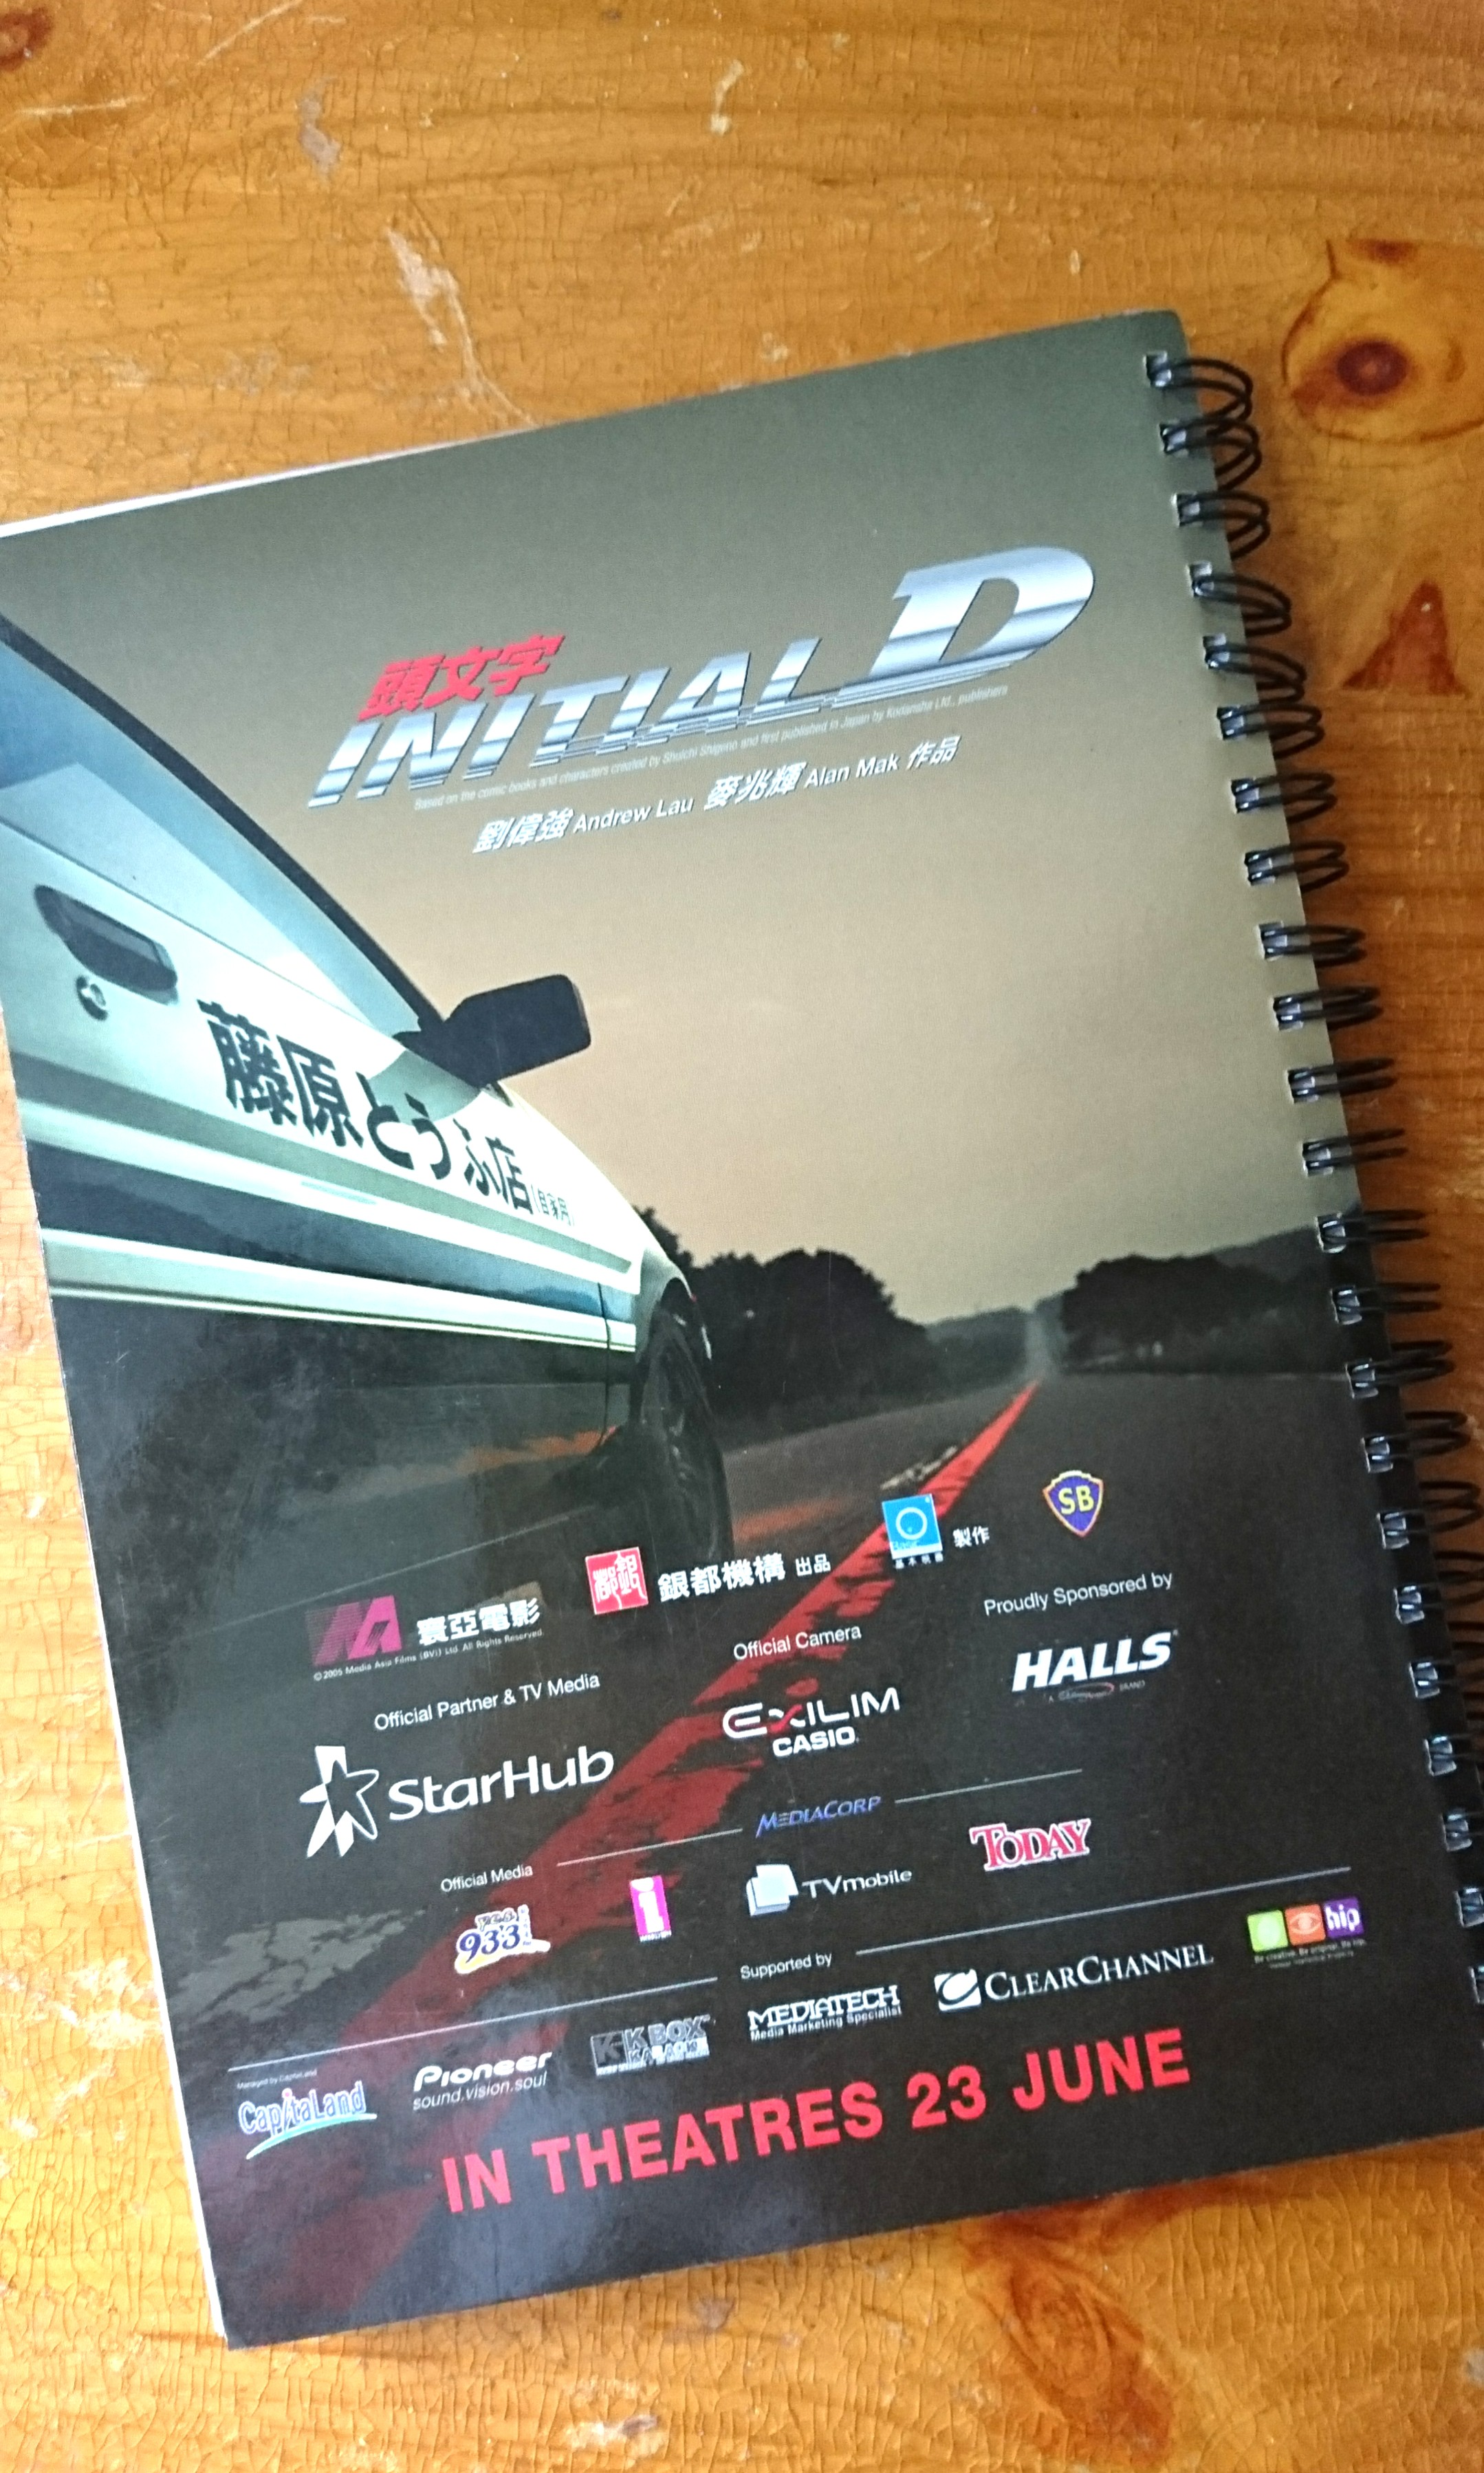 Jay Chou Initial D Movie Notebook from 2005